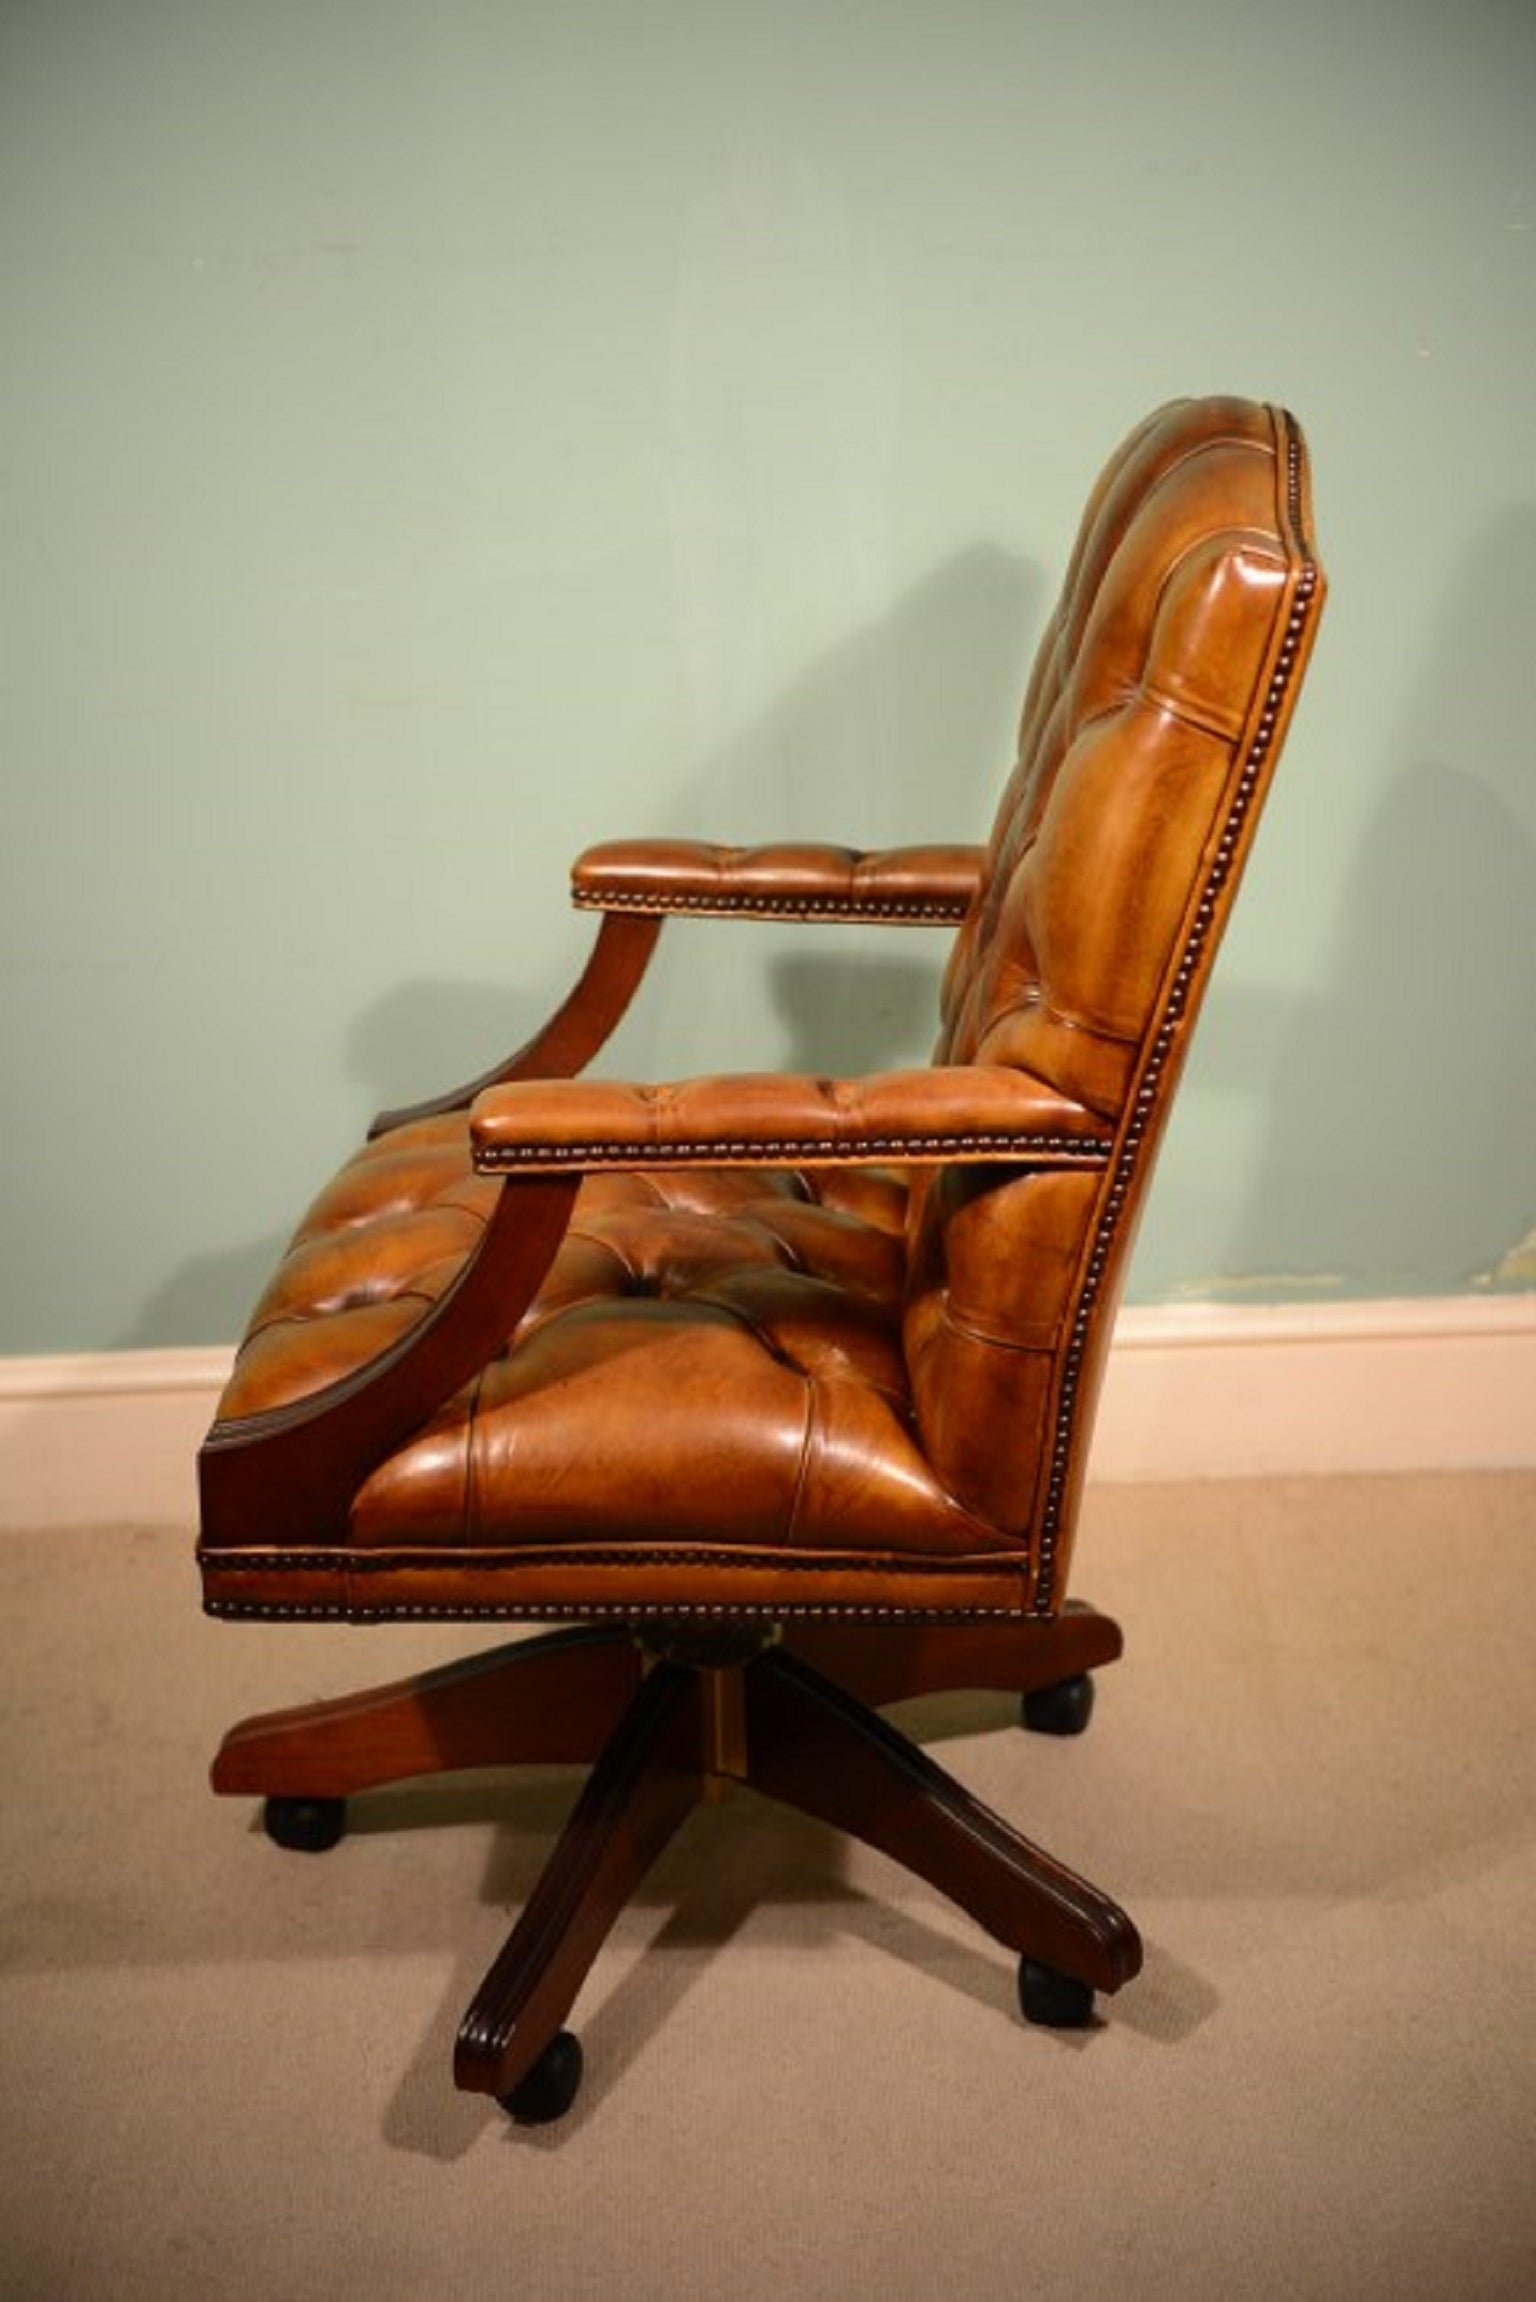 English Handmade Gainsborough Leather Desk Chair Cognac For Sale At 1stdibs